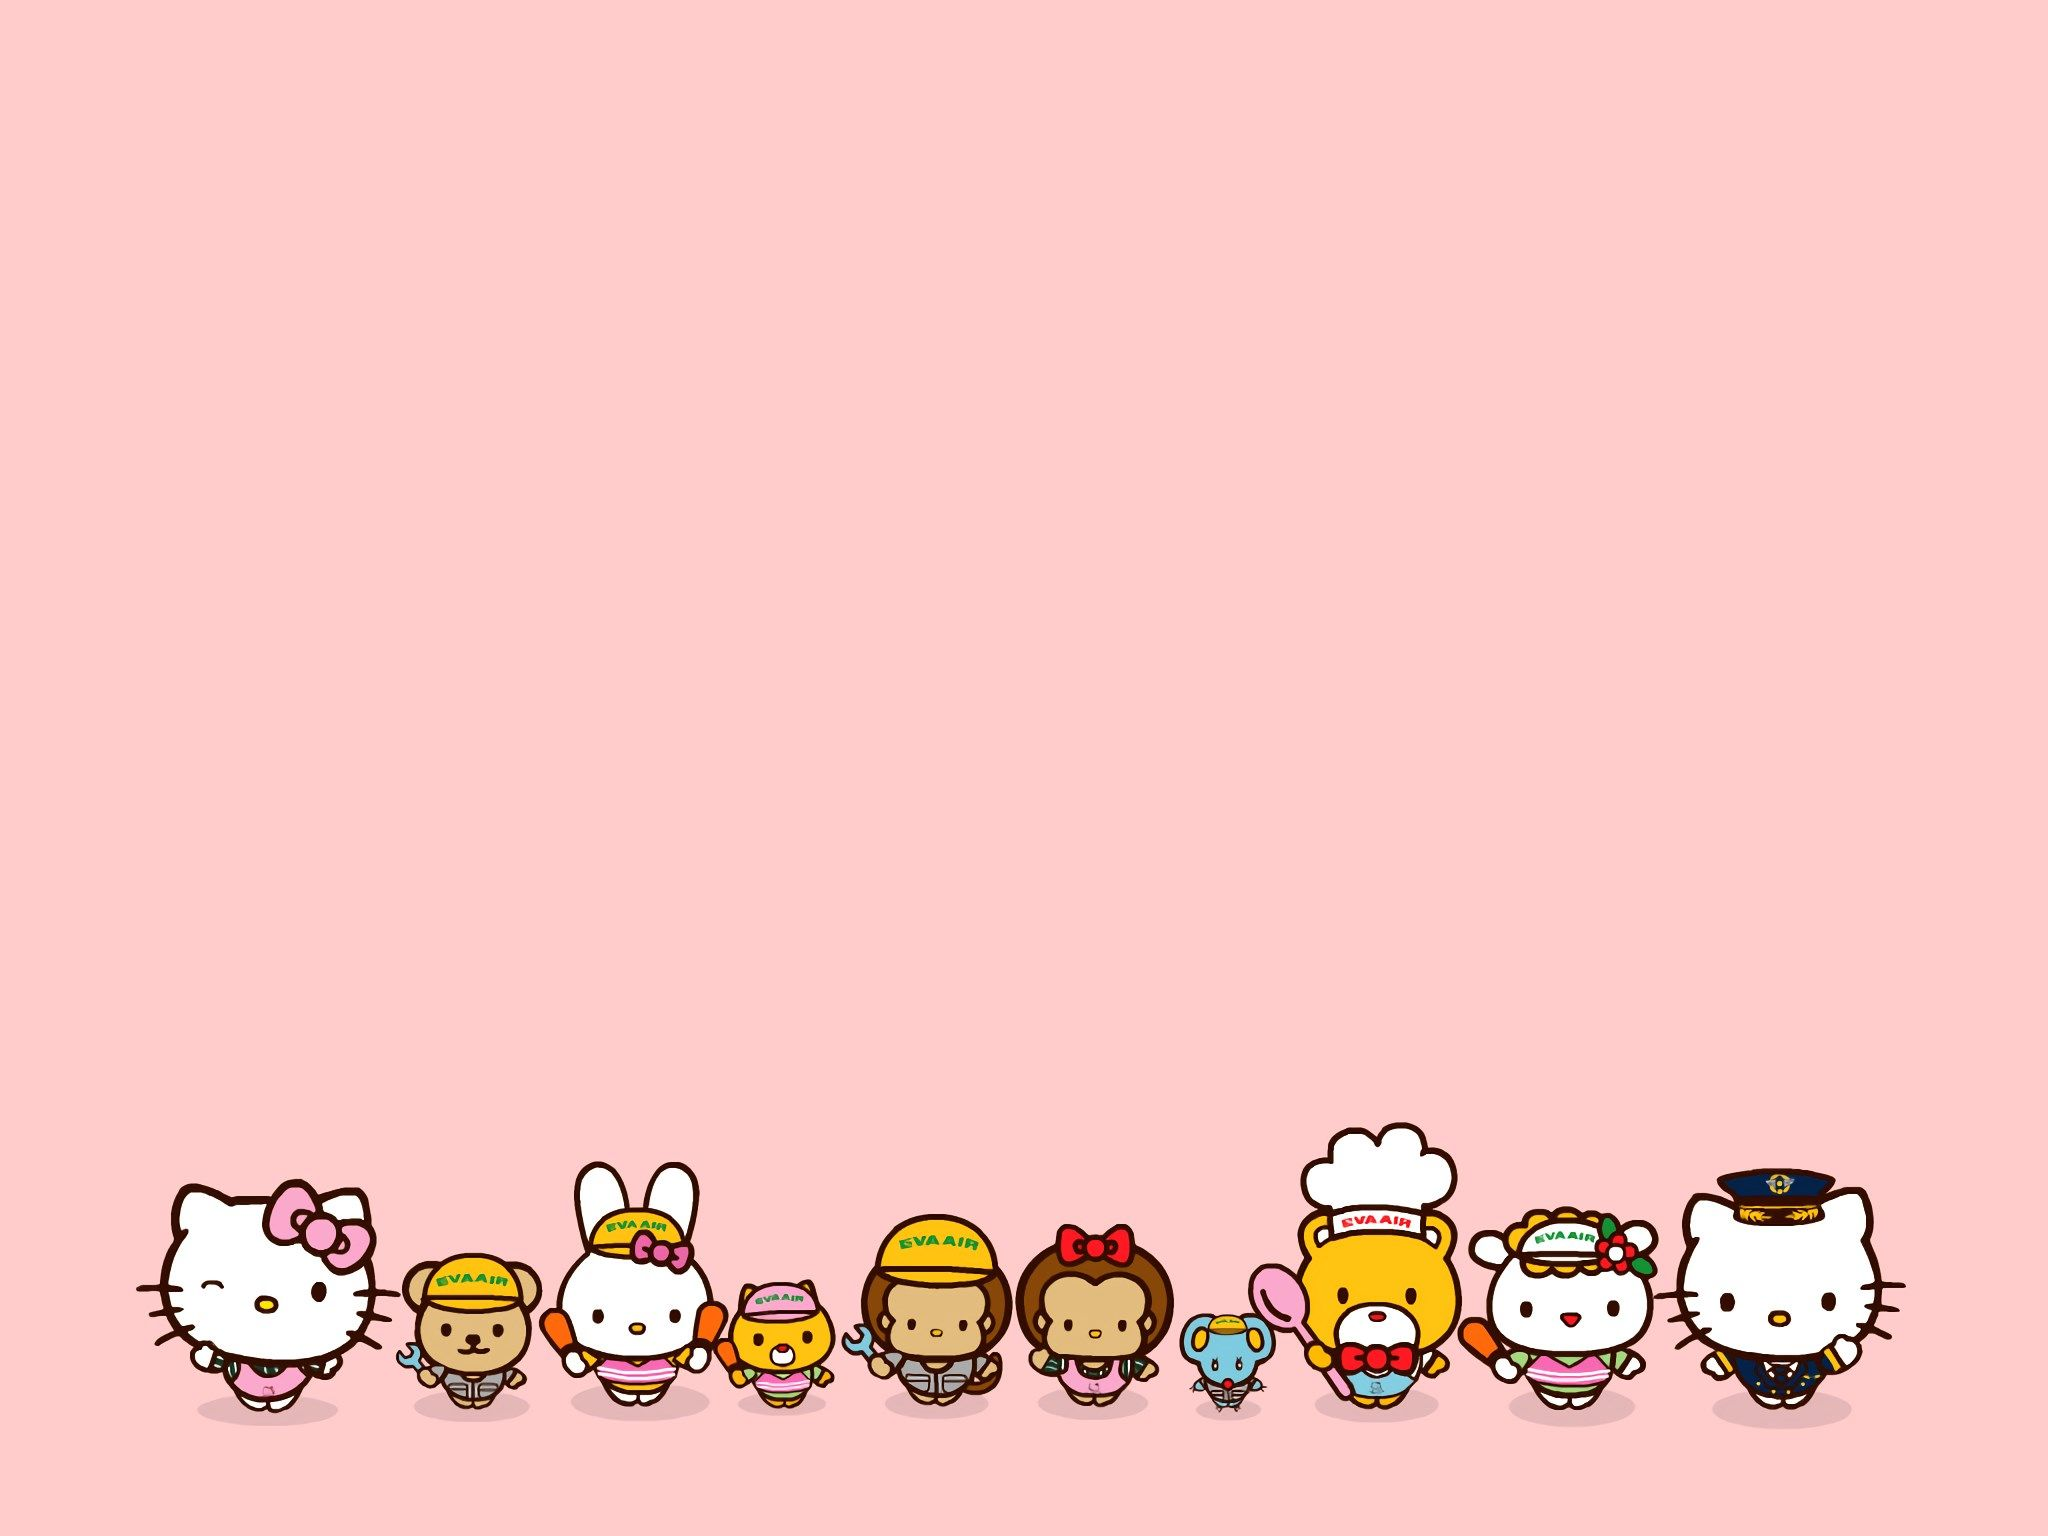 Simple Wallpaper Hello Kitty Friend - 19d8064ac134638581822d574177099e  Pic_92669.jpg